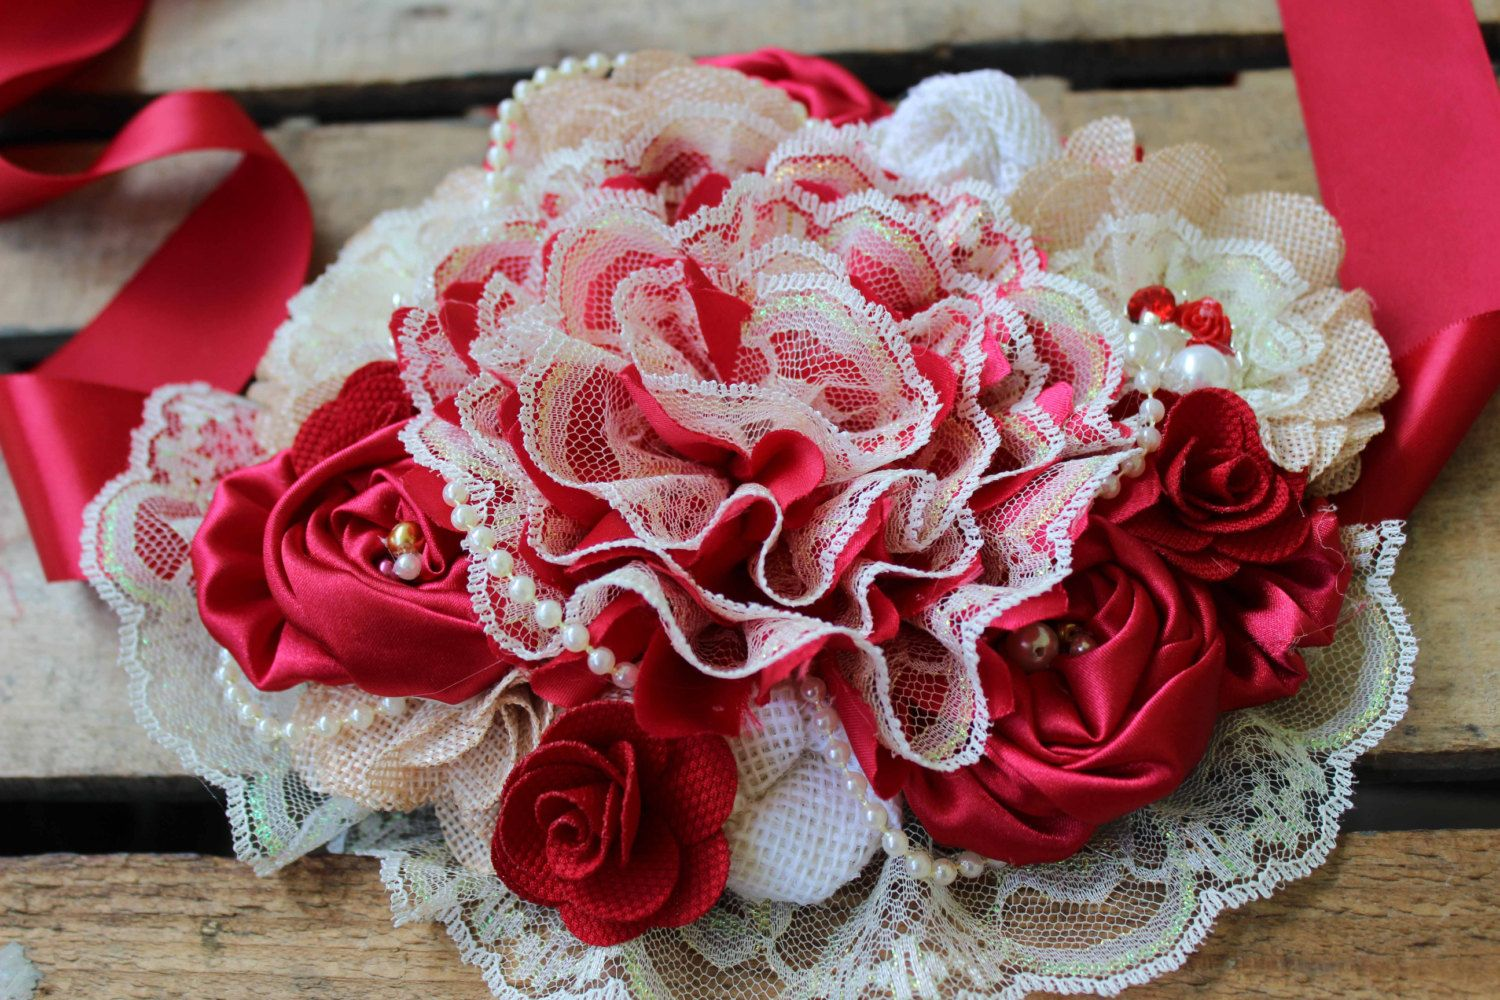 Red Burlap Rustic Maternity Belt Vintage Lace Maternity Sash Belly